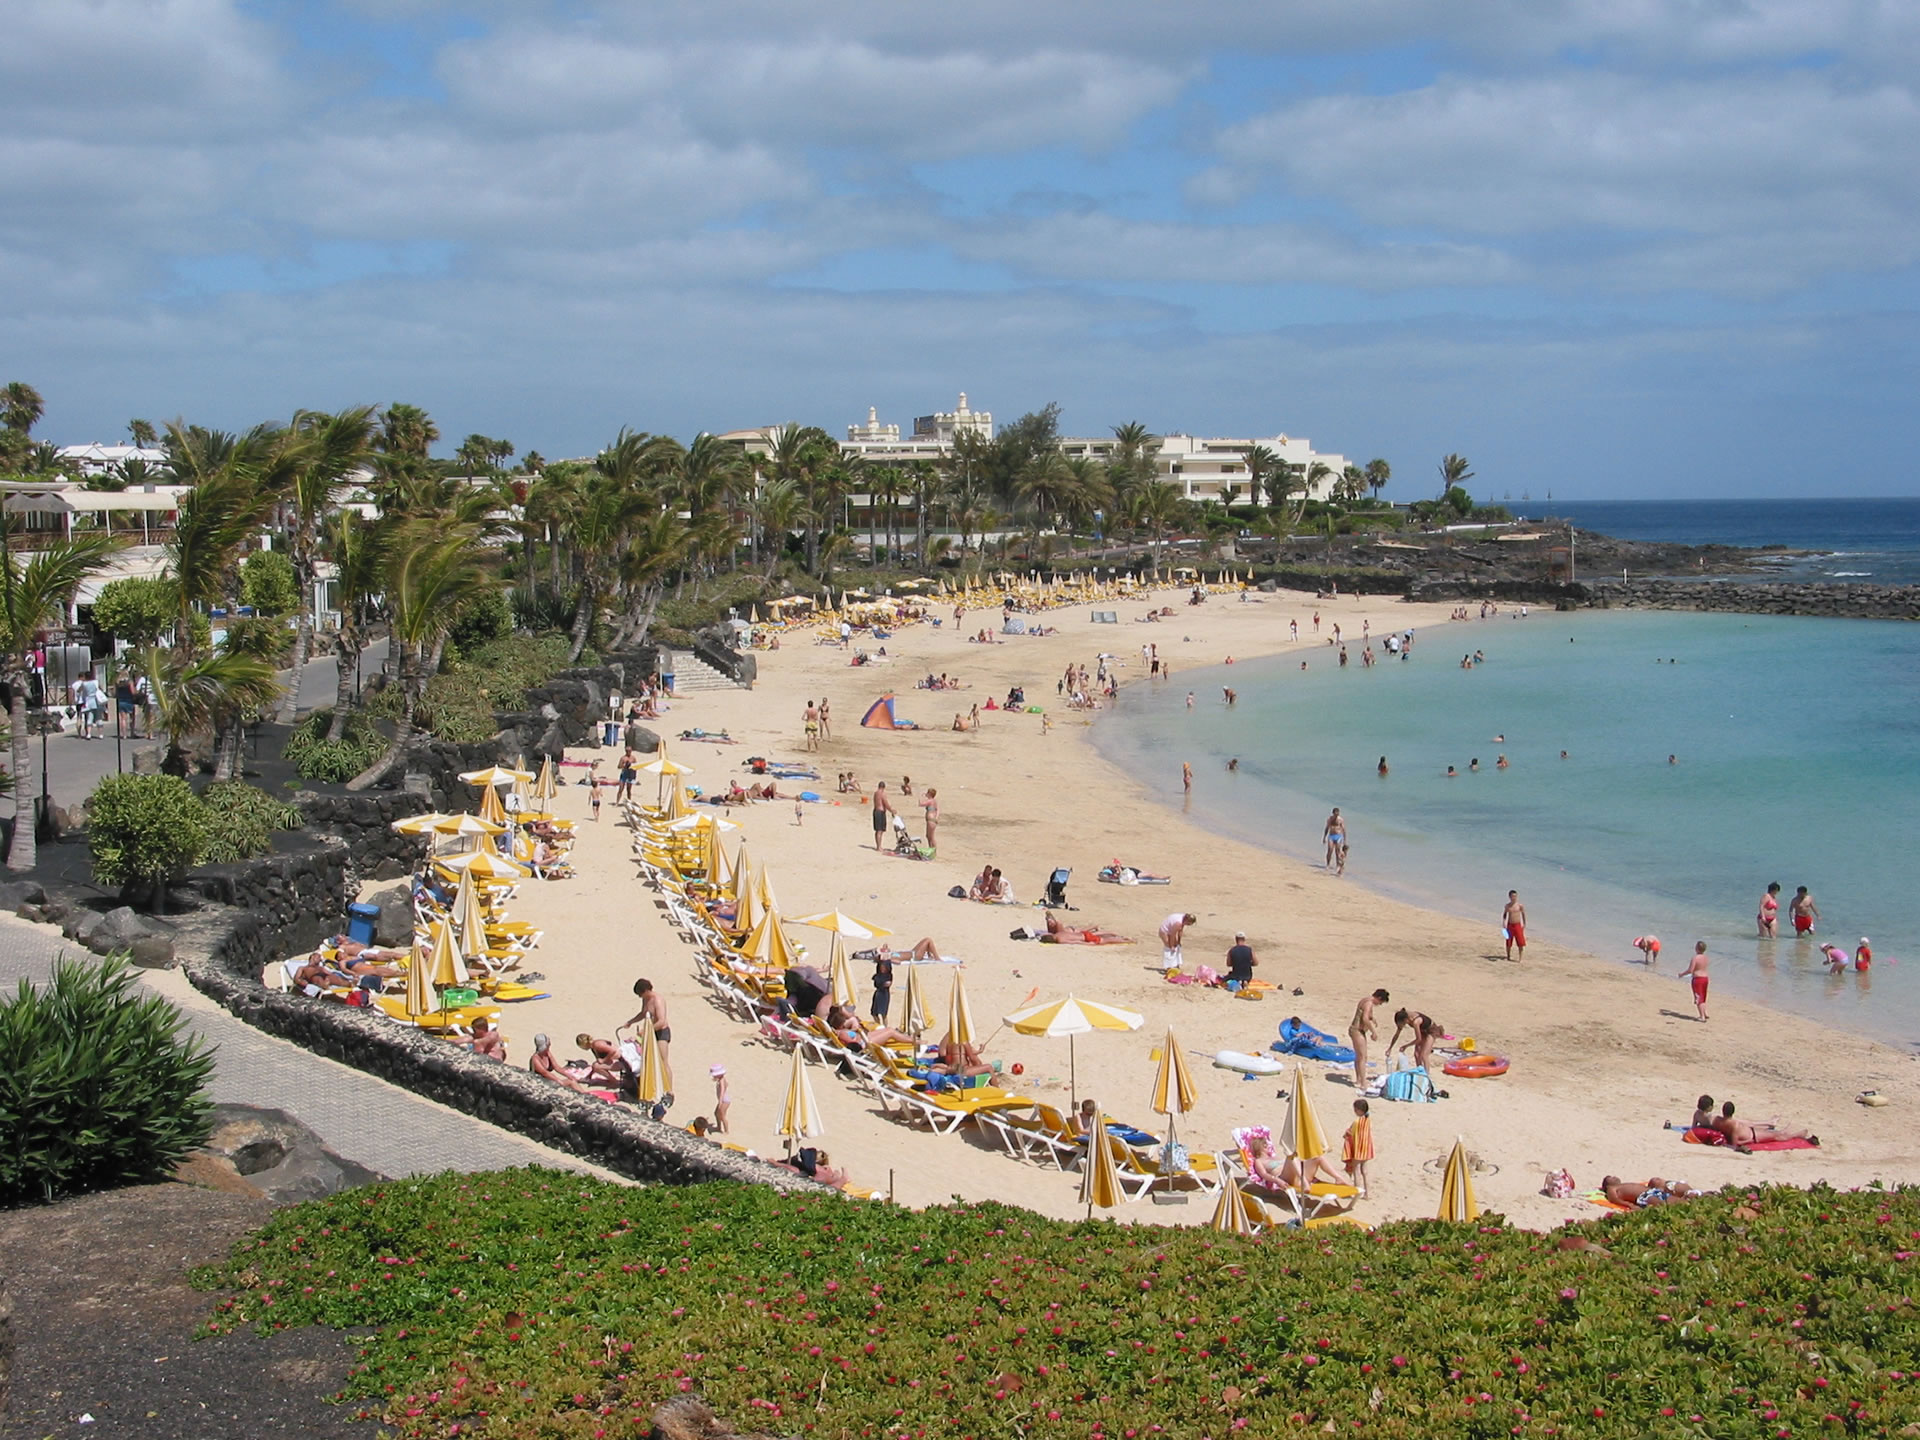 Canary Islands represent an exotic and paradisiacal destination